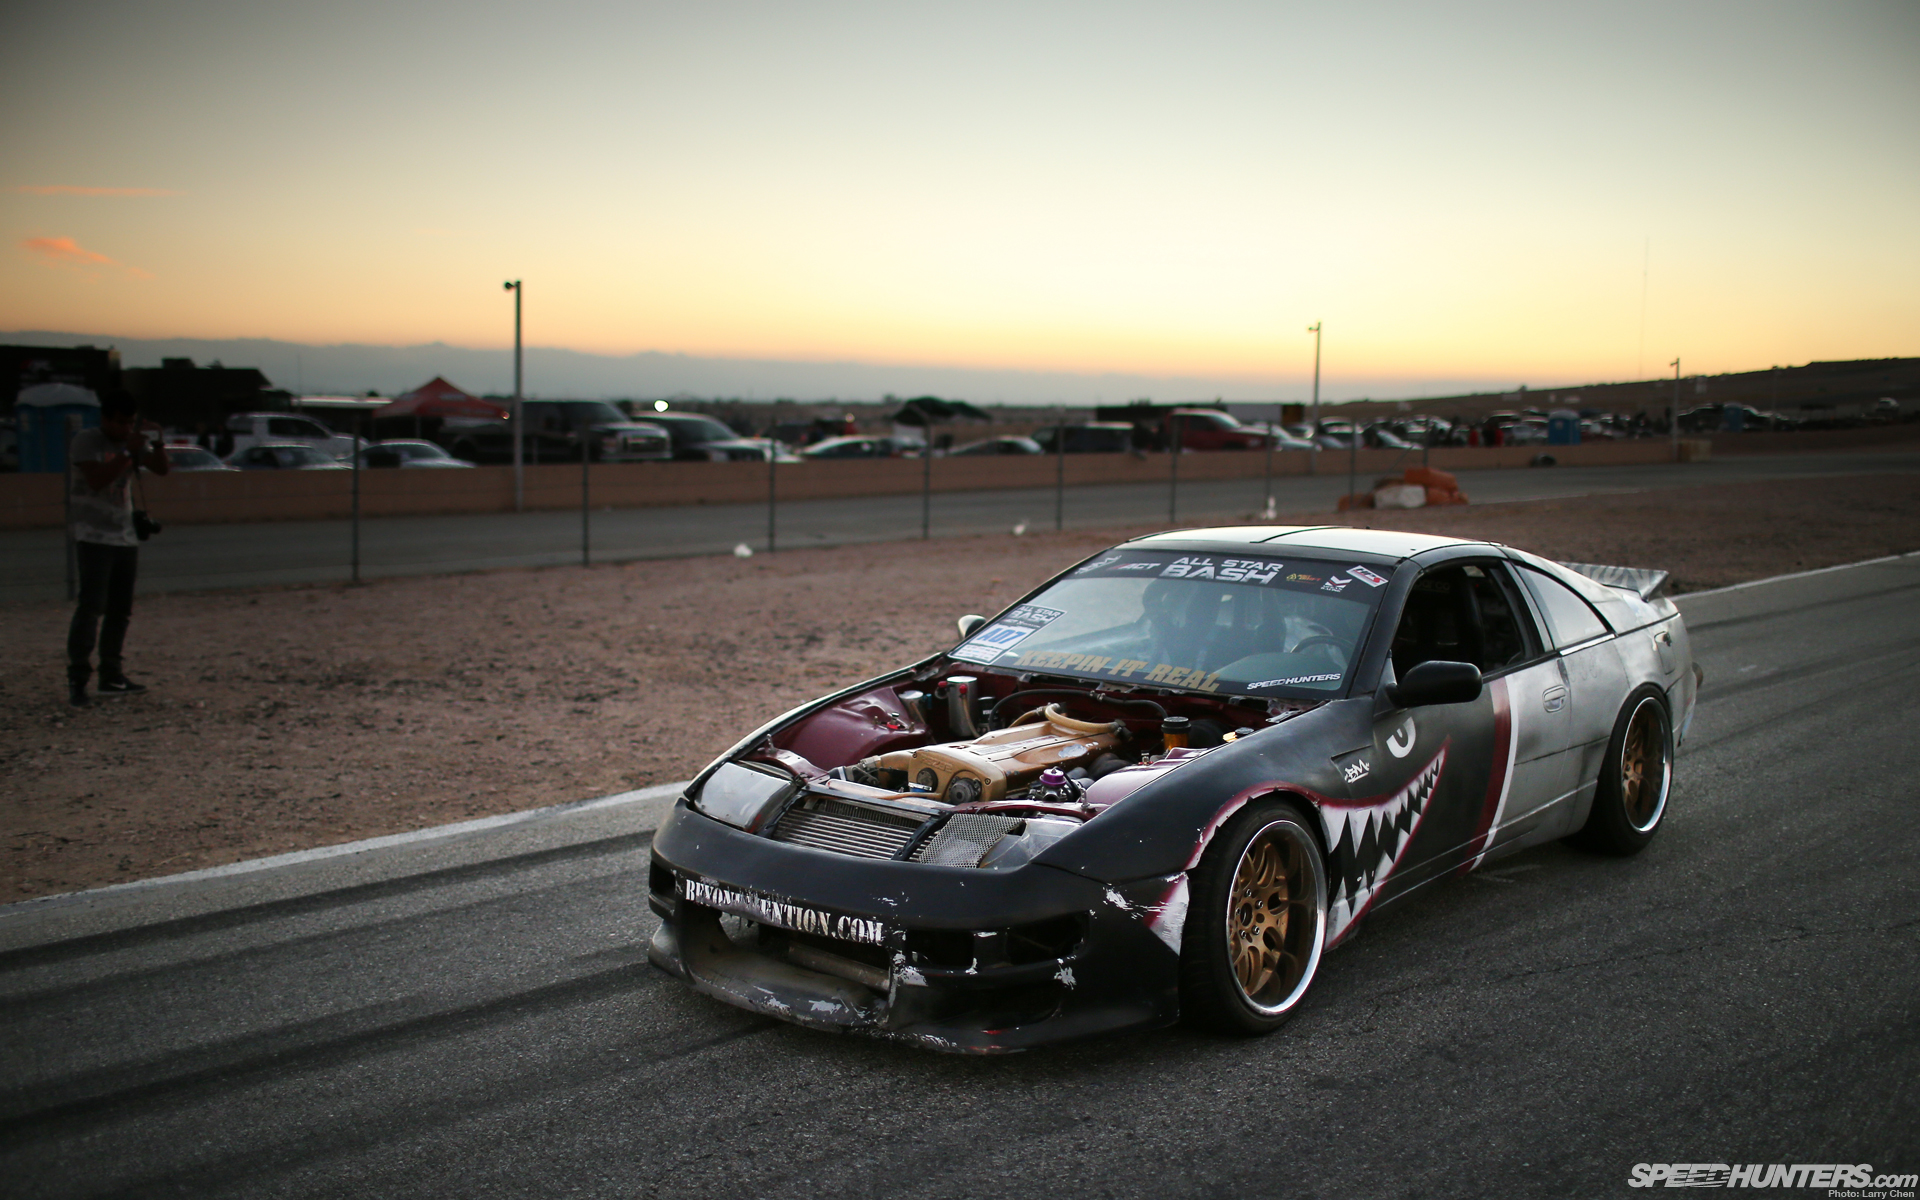 The Z32 Fighter Plane Speedhunters